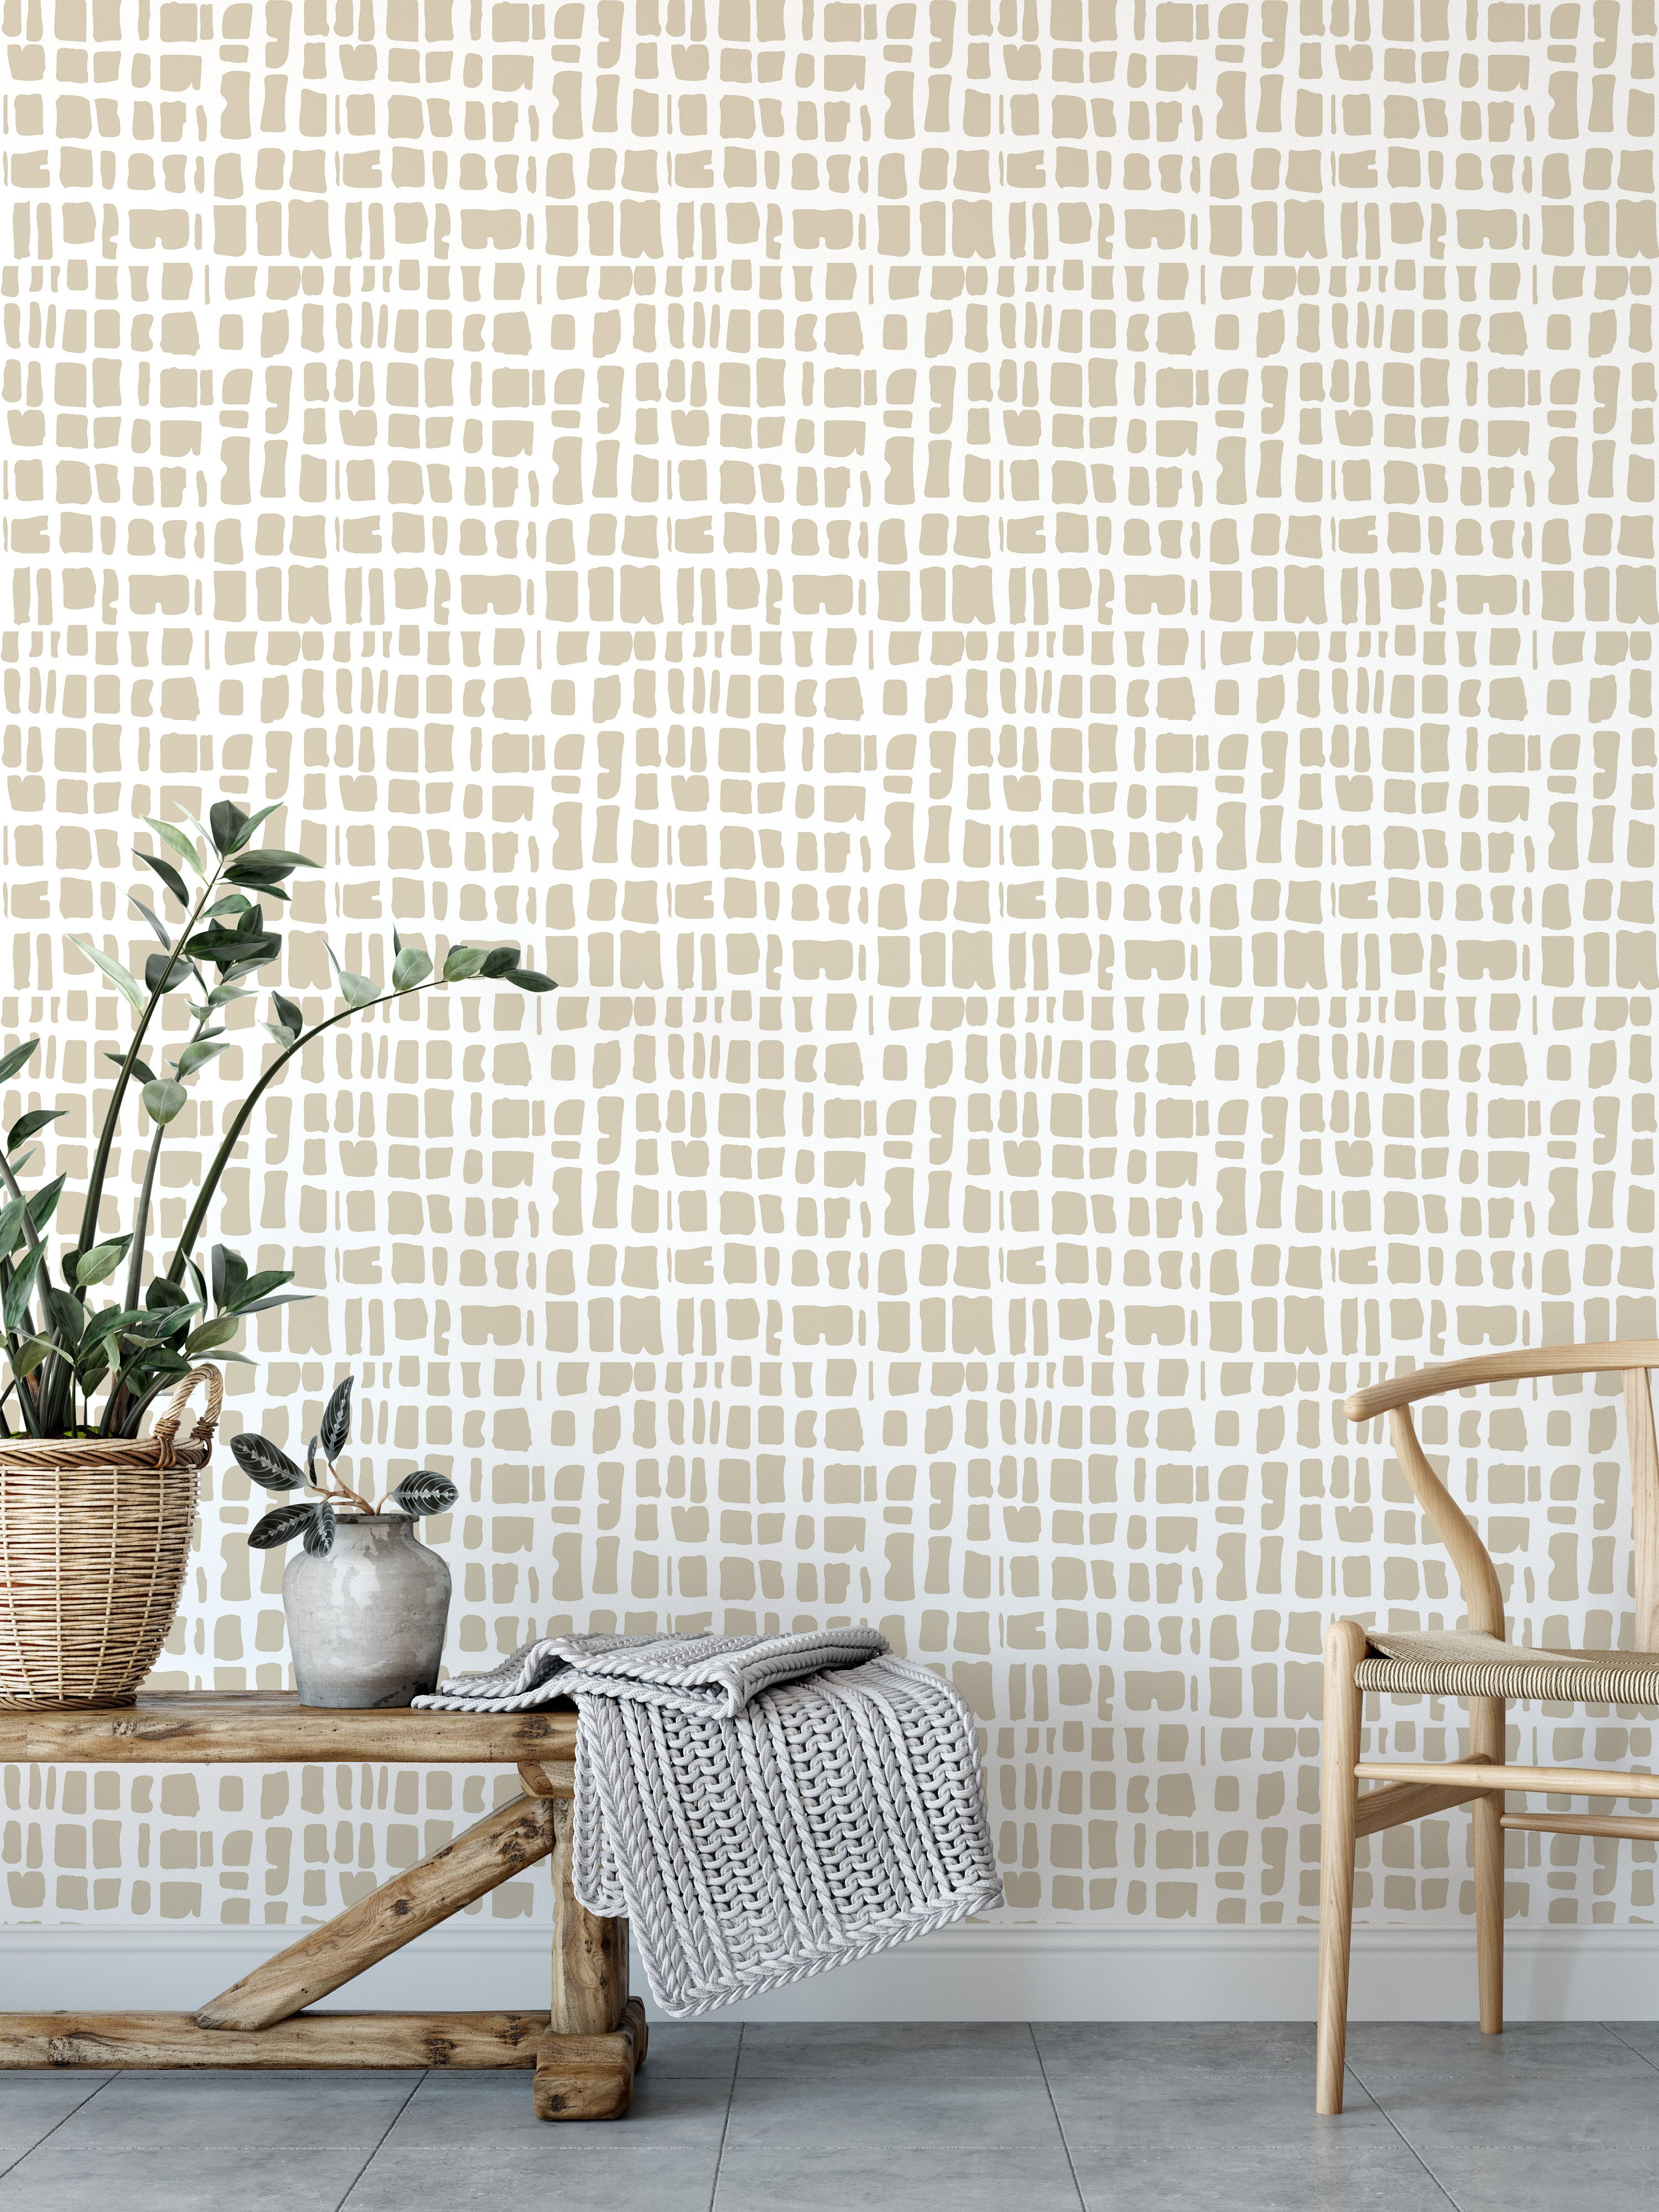 Woven How to install wallpaper, Home decor, Peel, stick